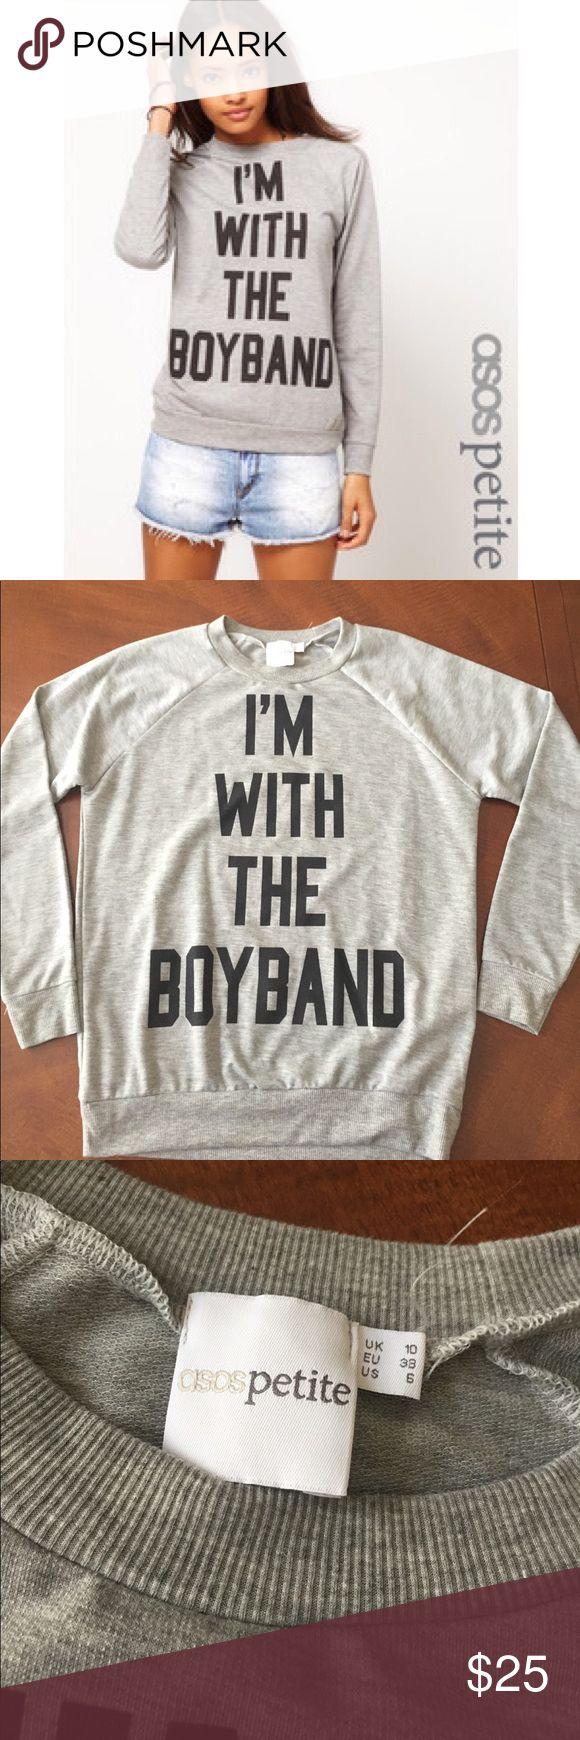 Asos Petite I'm With The Boyband Crewneck Top US size 6. Worn once. As seen on Lou Teasdale. Asos Tops